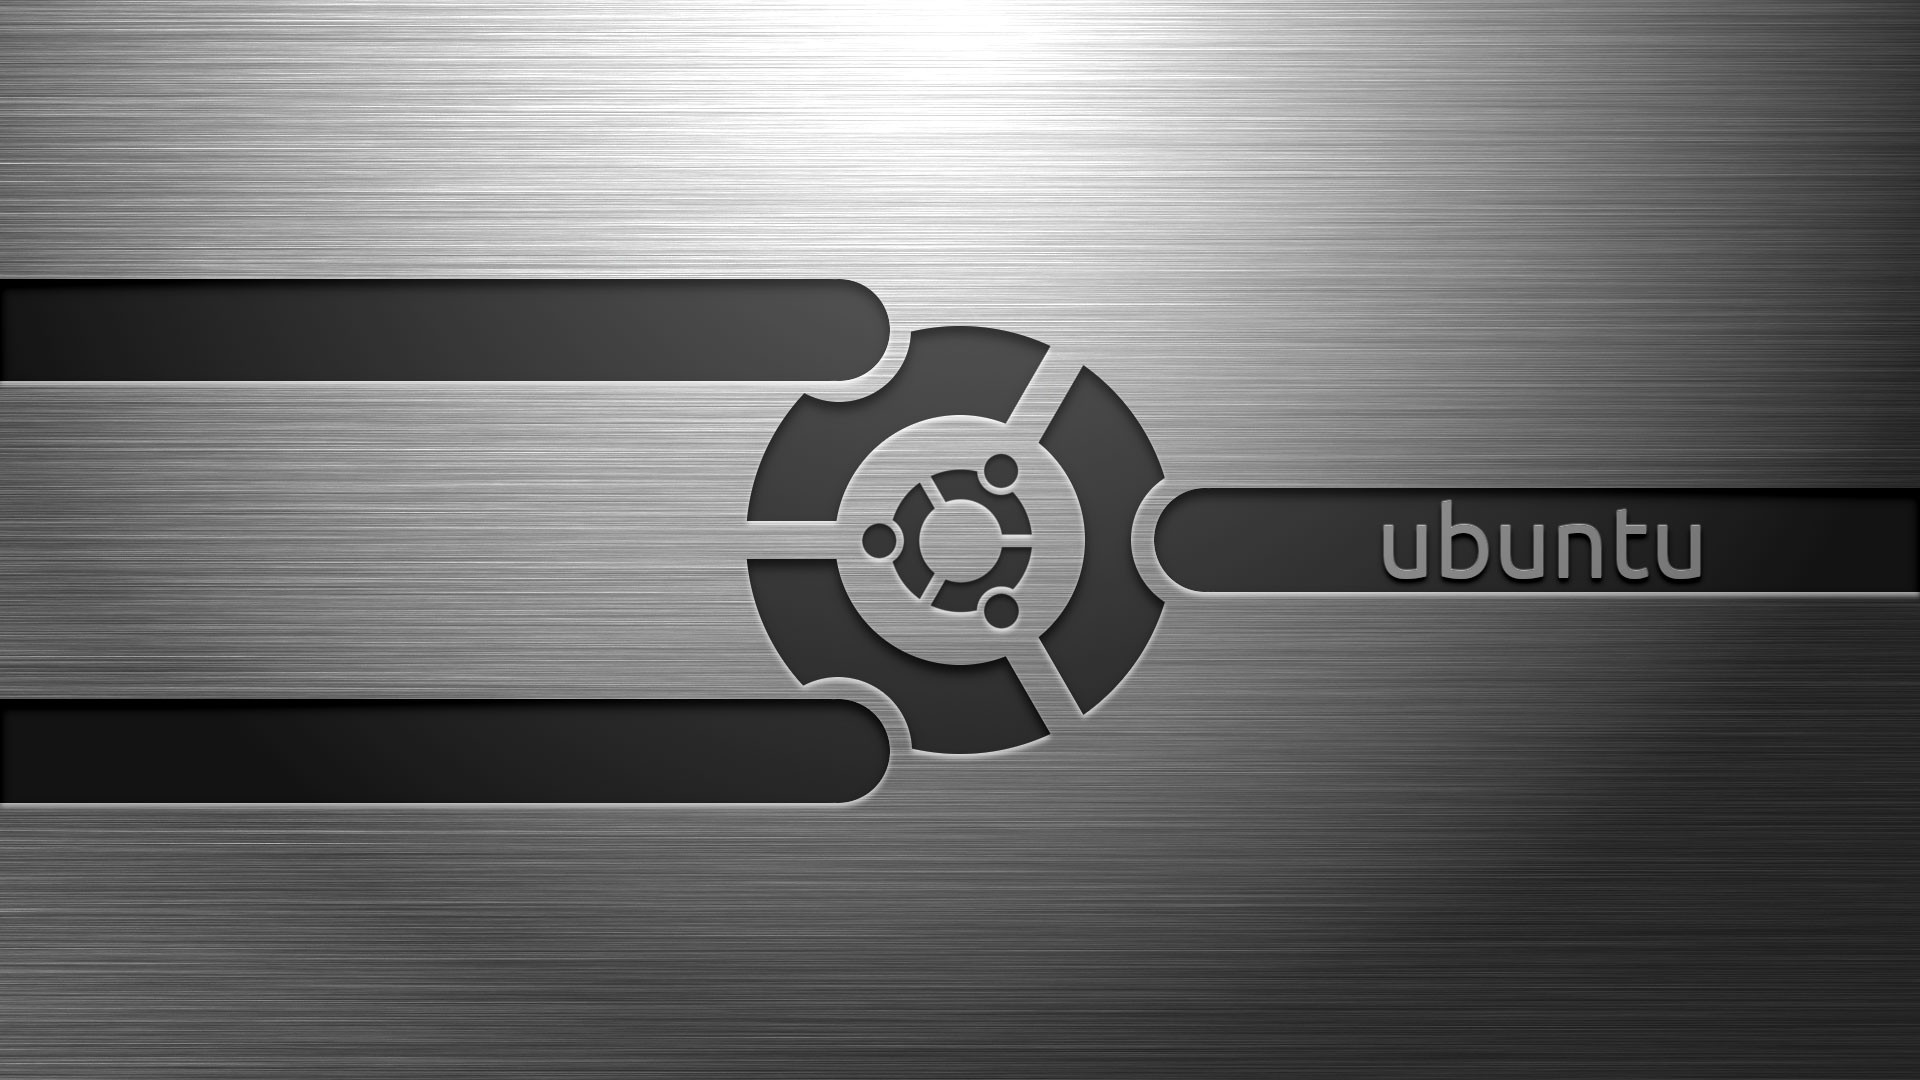 Ubuntu Wallpaper Silver HD Desktop